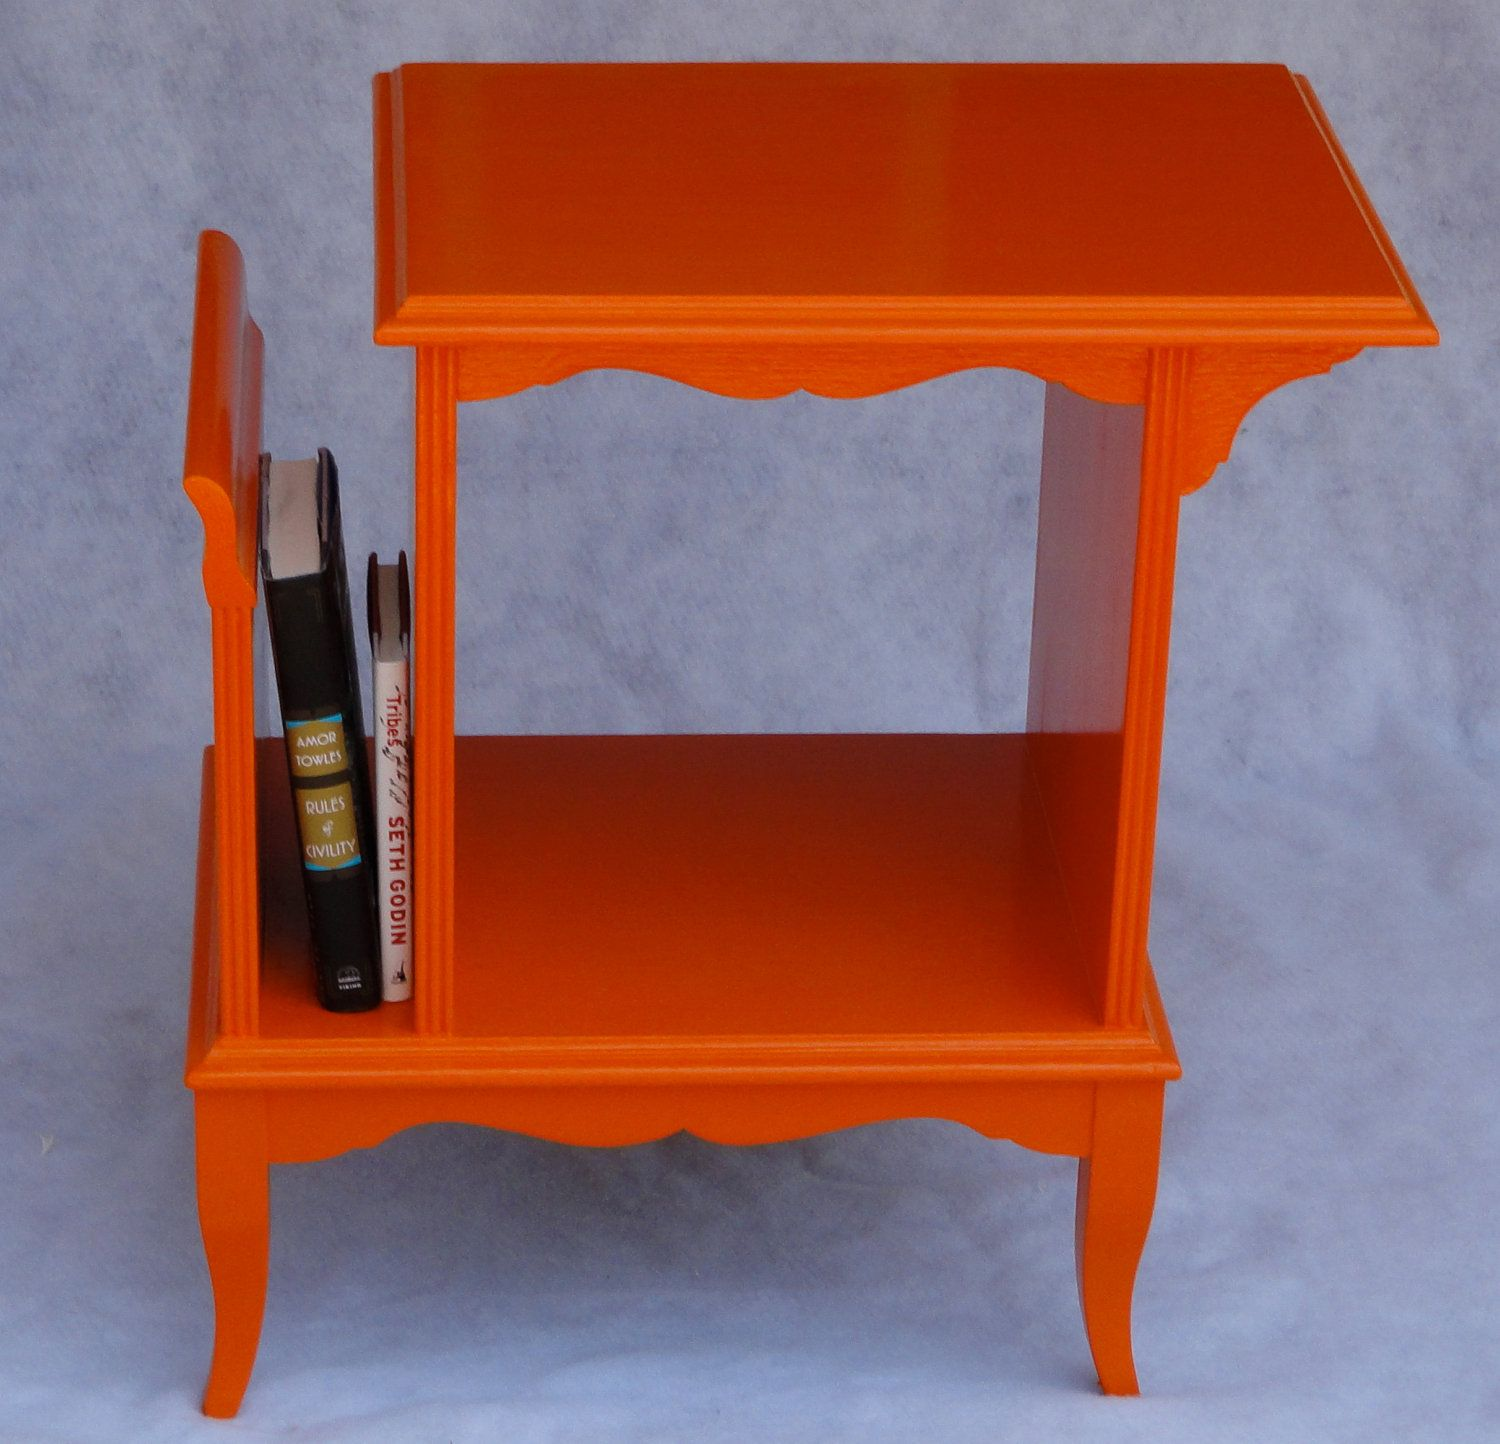 upcycled orange painted magazine rack side table nightstand accent end oval with drawer college dorm room hairpin legs coffee and chairs mid century dresser wooden bedside designs